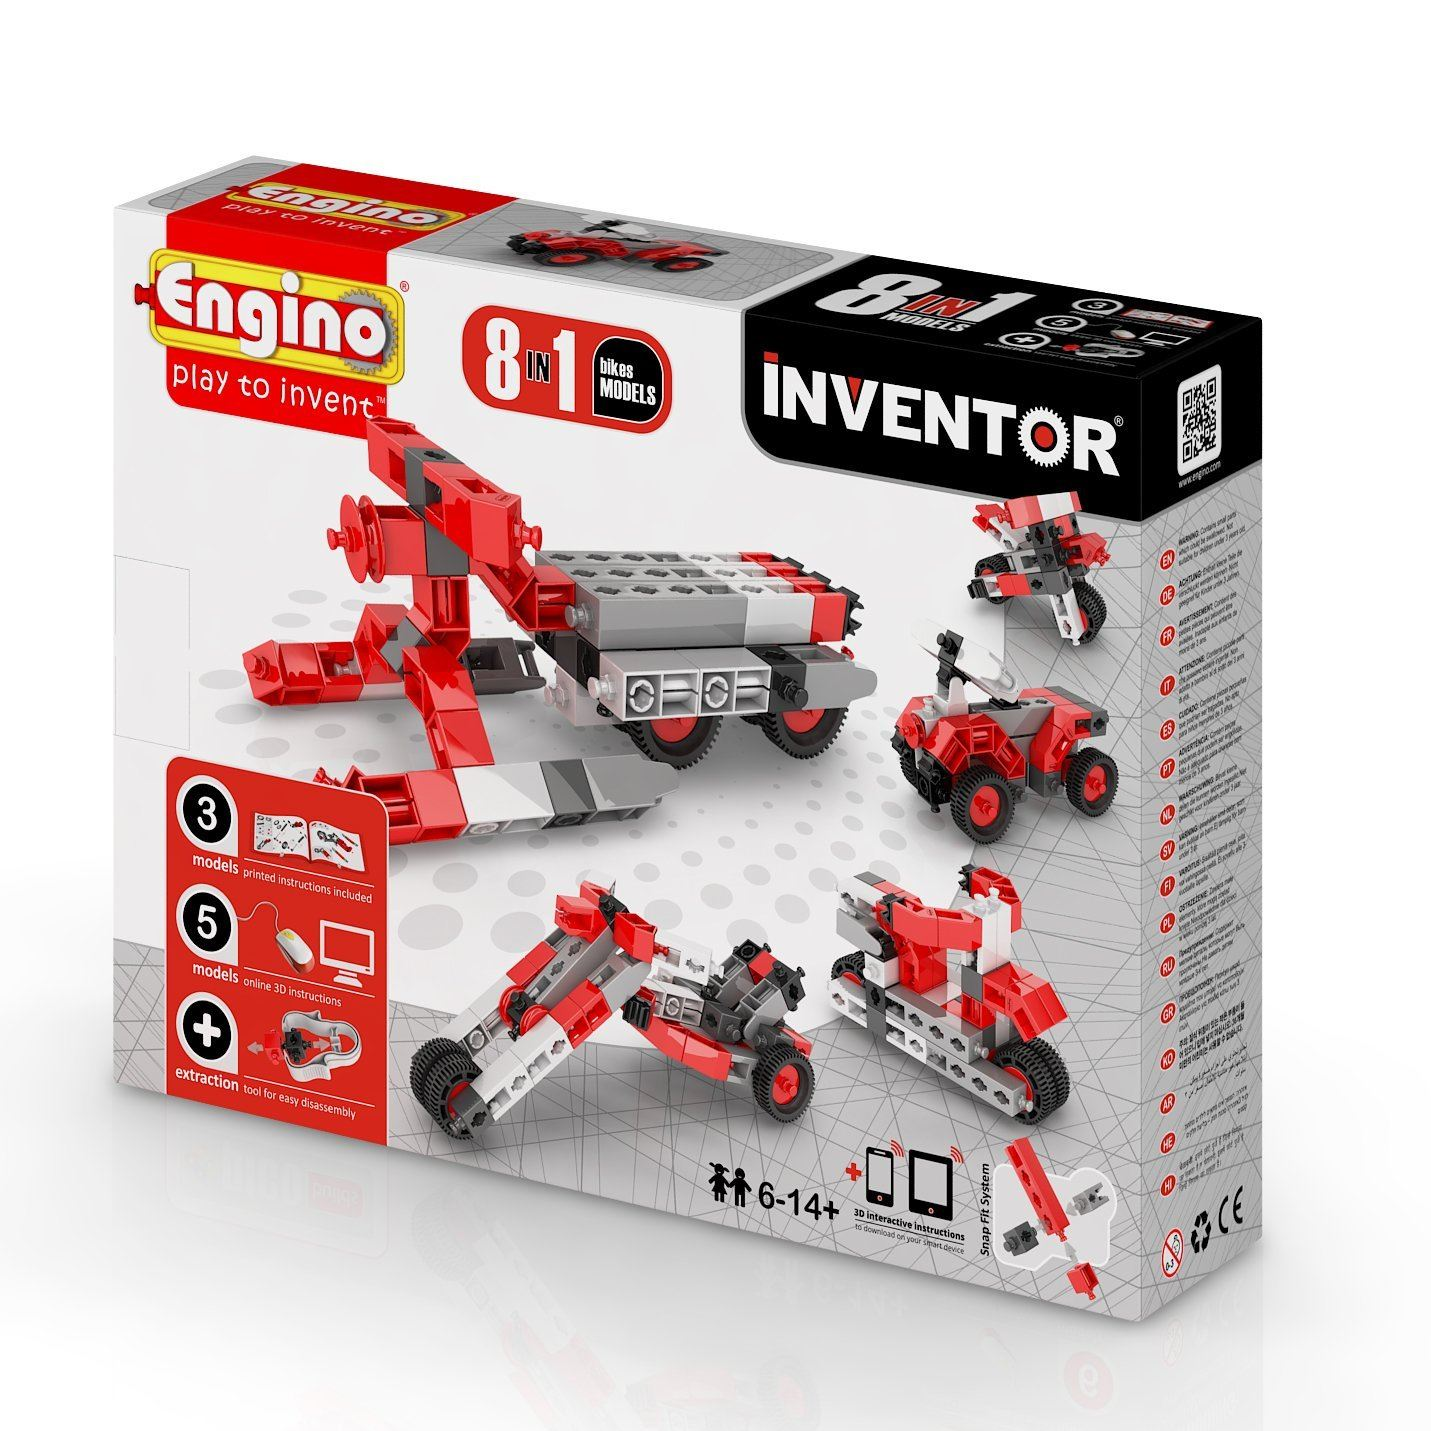 Engino Inventor 8 In 1 Bikes Pack #0832